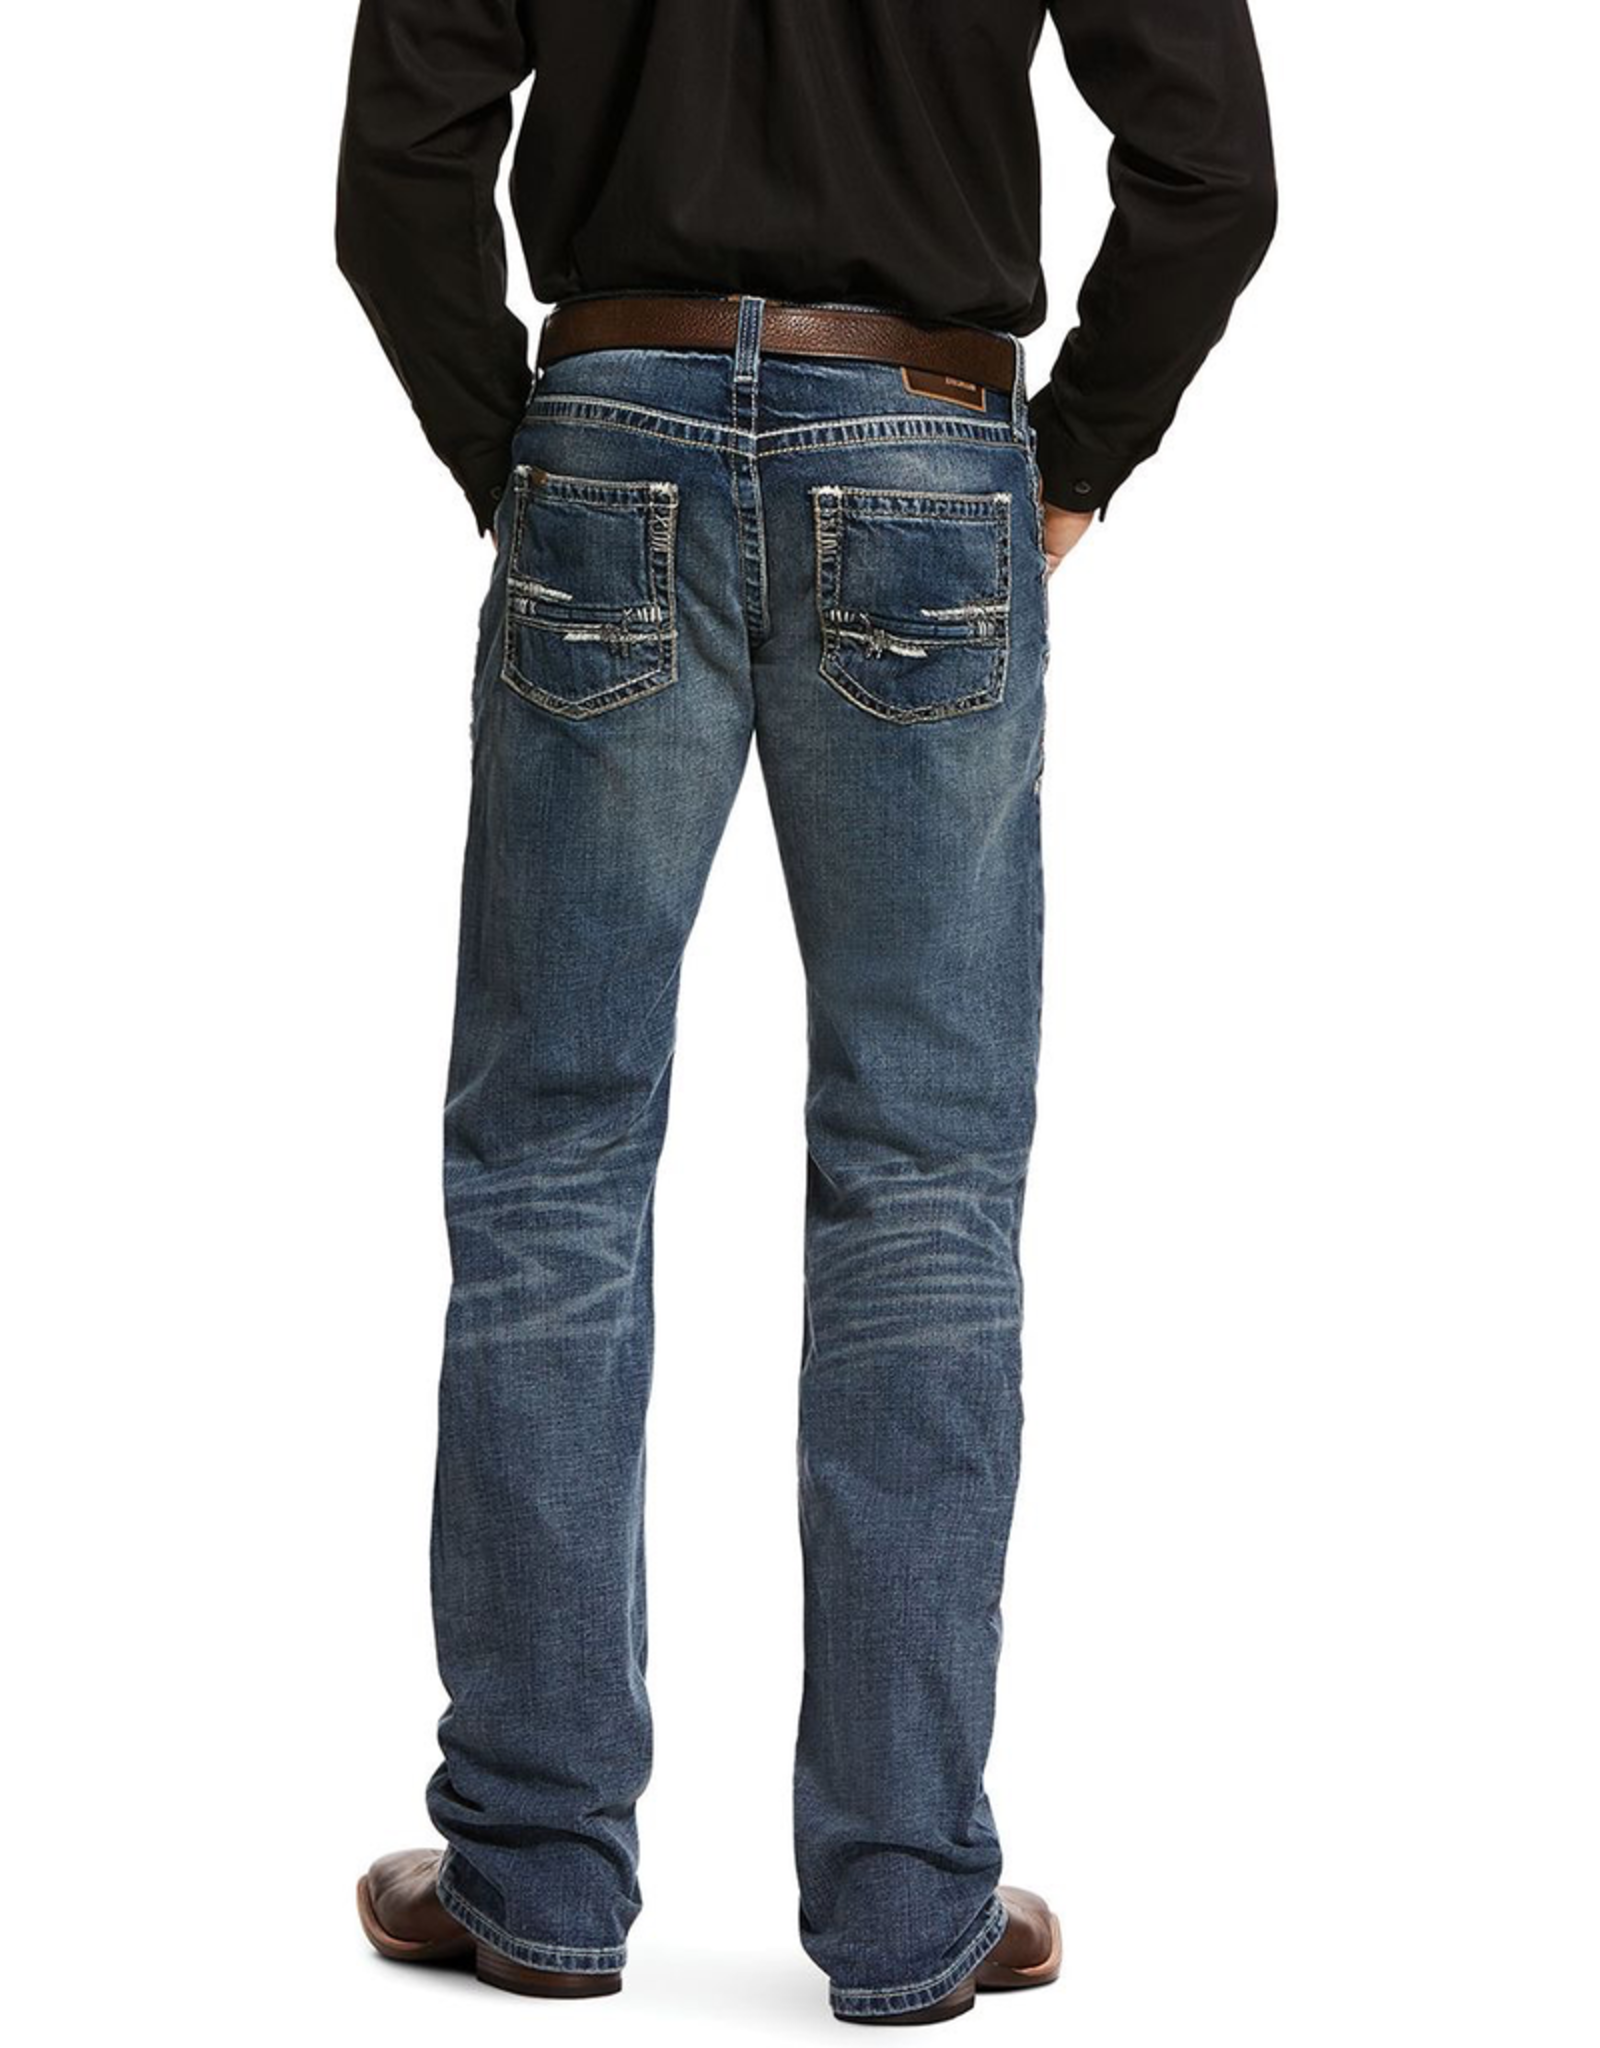 Jeans-Men ARIAT M5 Adkins